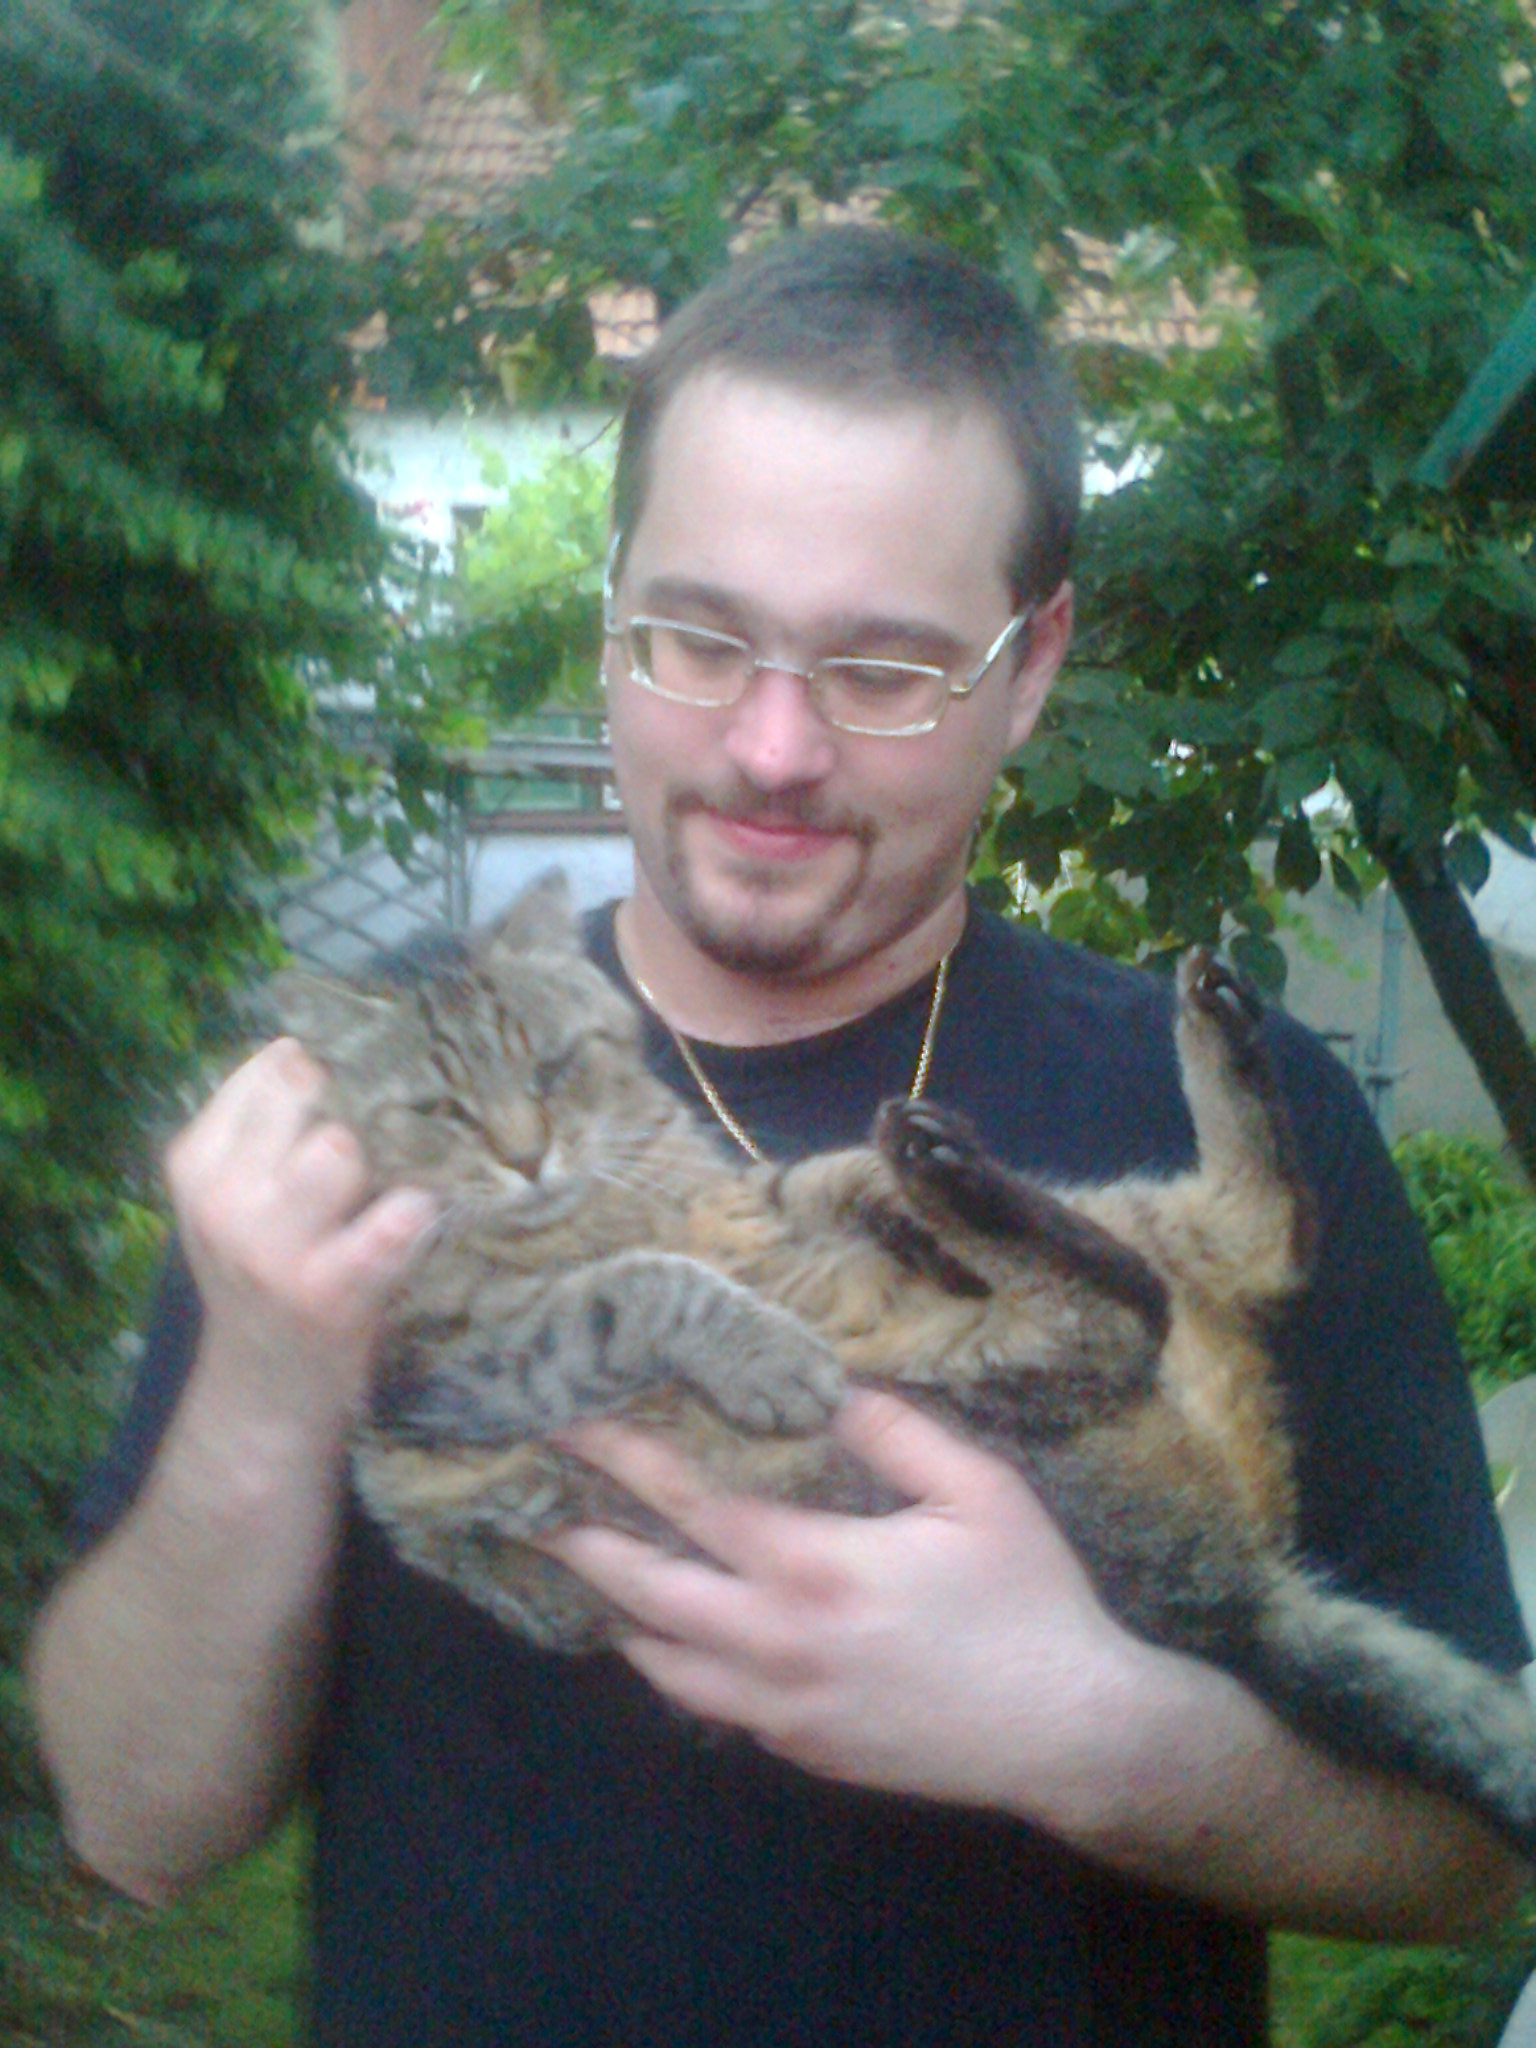 Me with my friend's huge cat